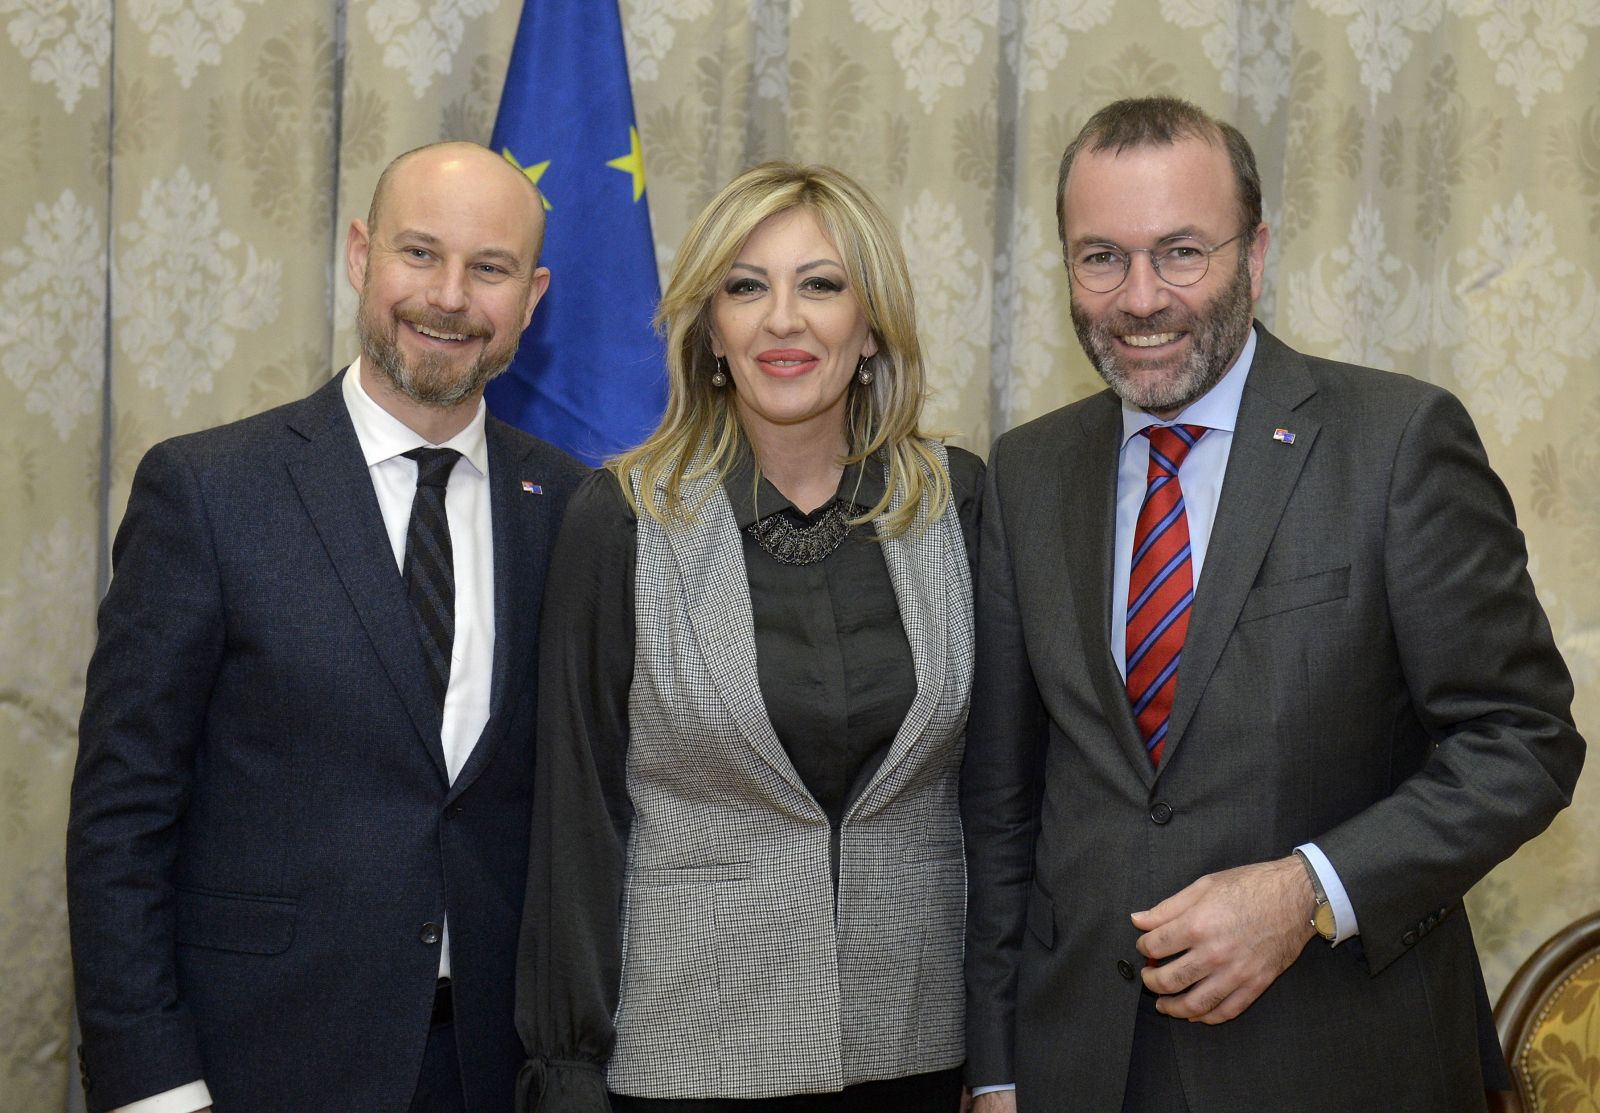 J. Joksimović with the EP Delegation: Serbia - a serious candidate and important partner to the EU